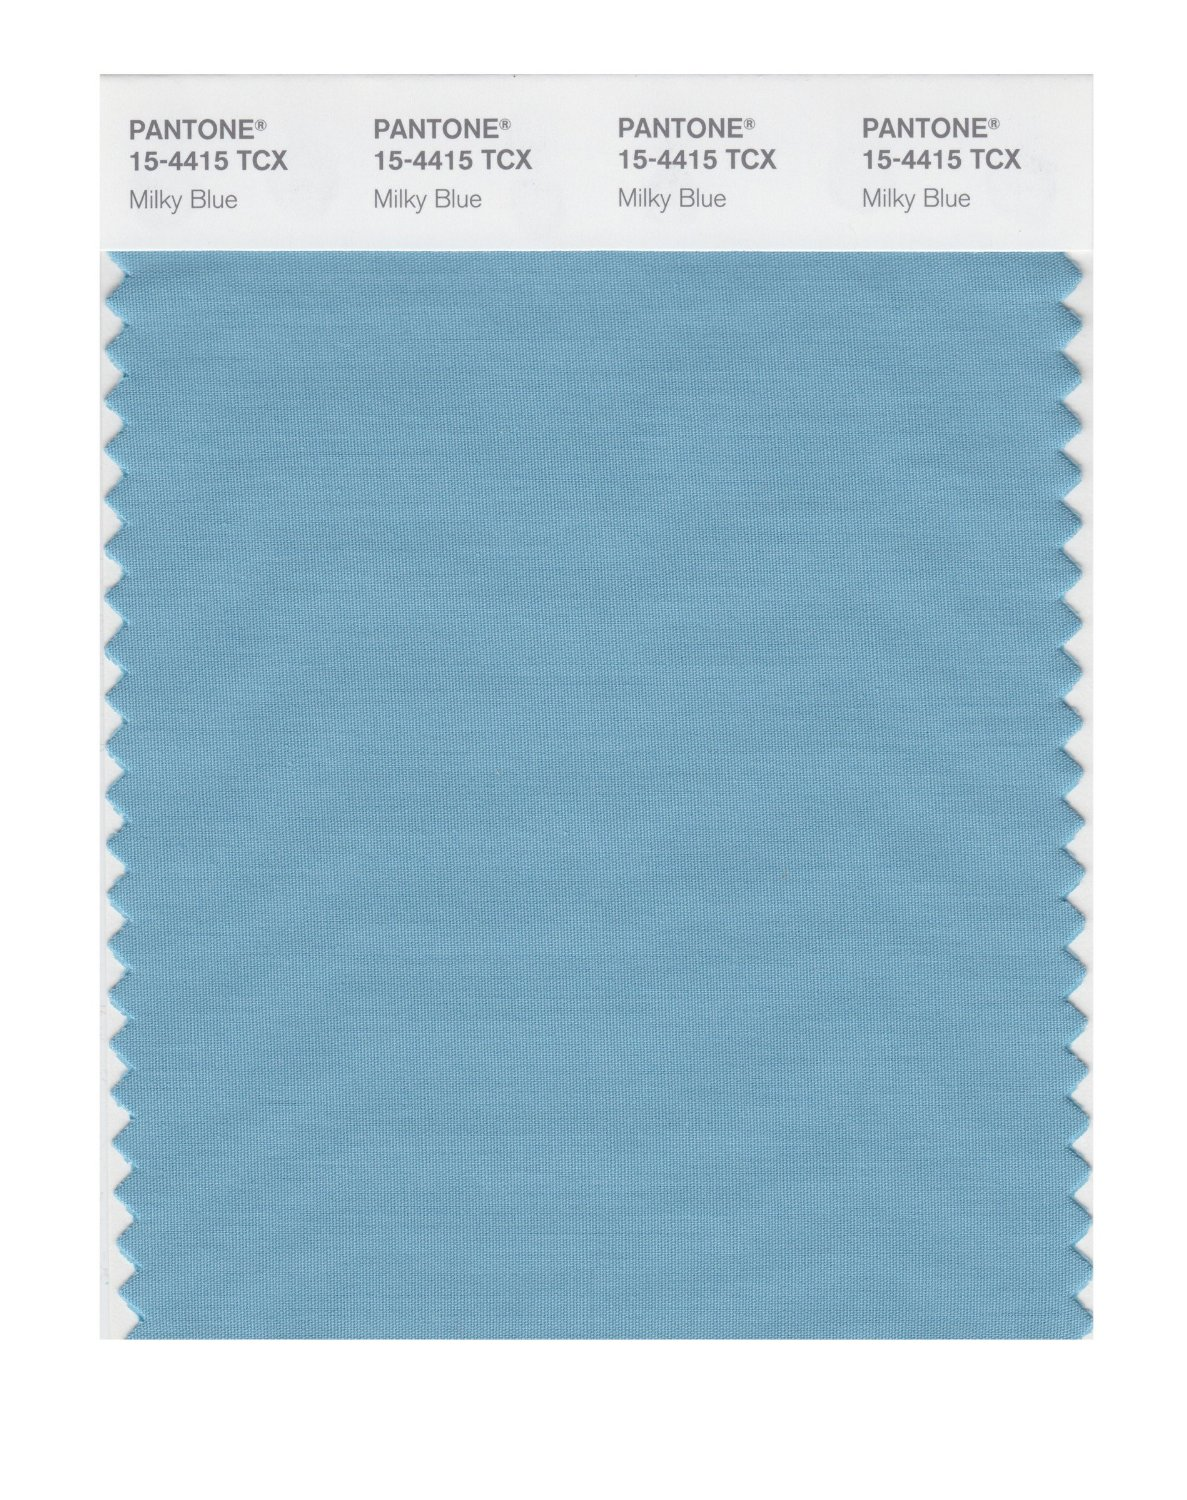 Pantone Smart Swatch 15-4415 Milky Blue